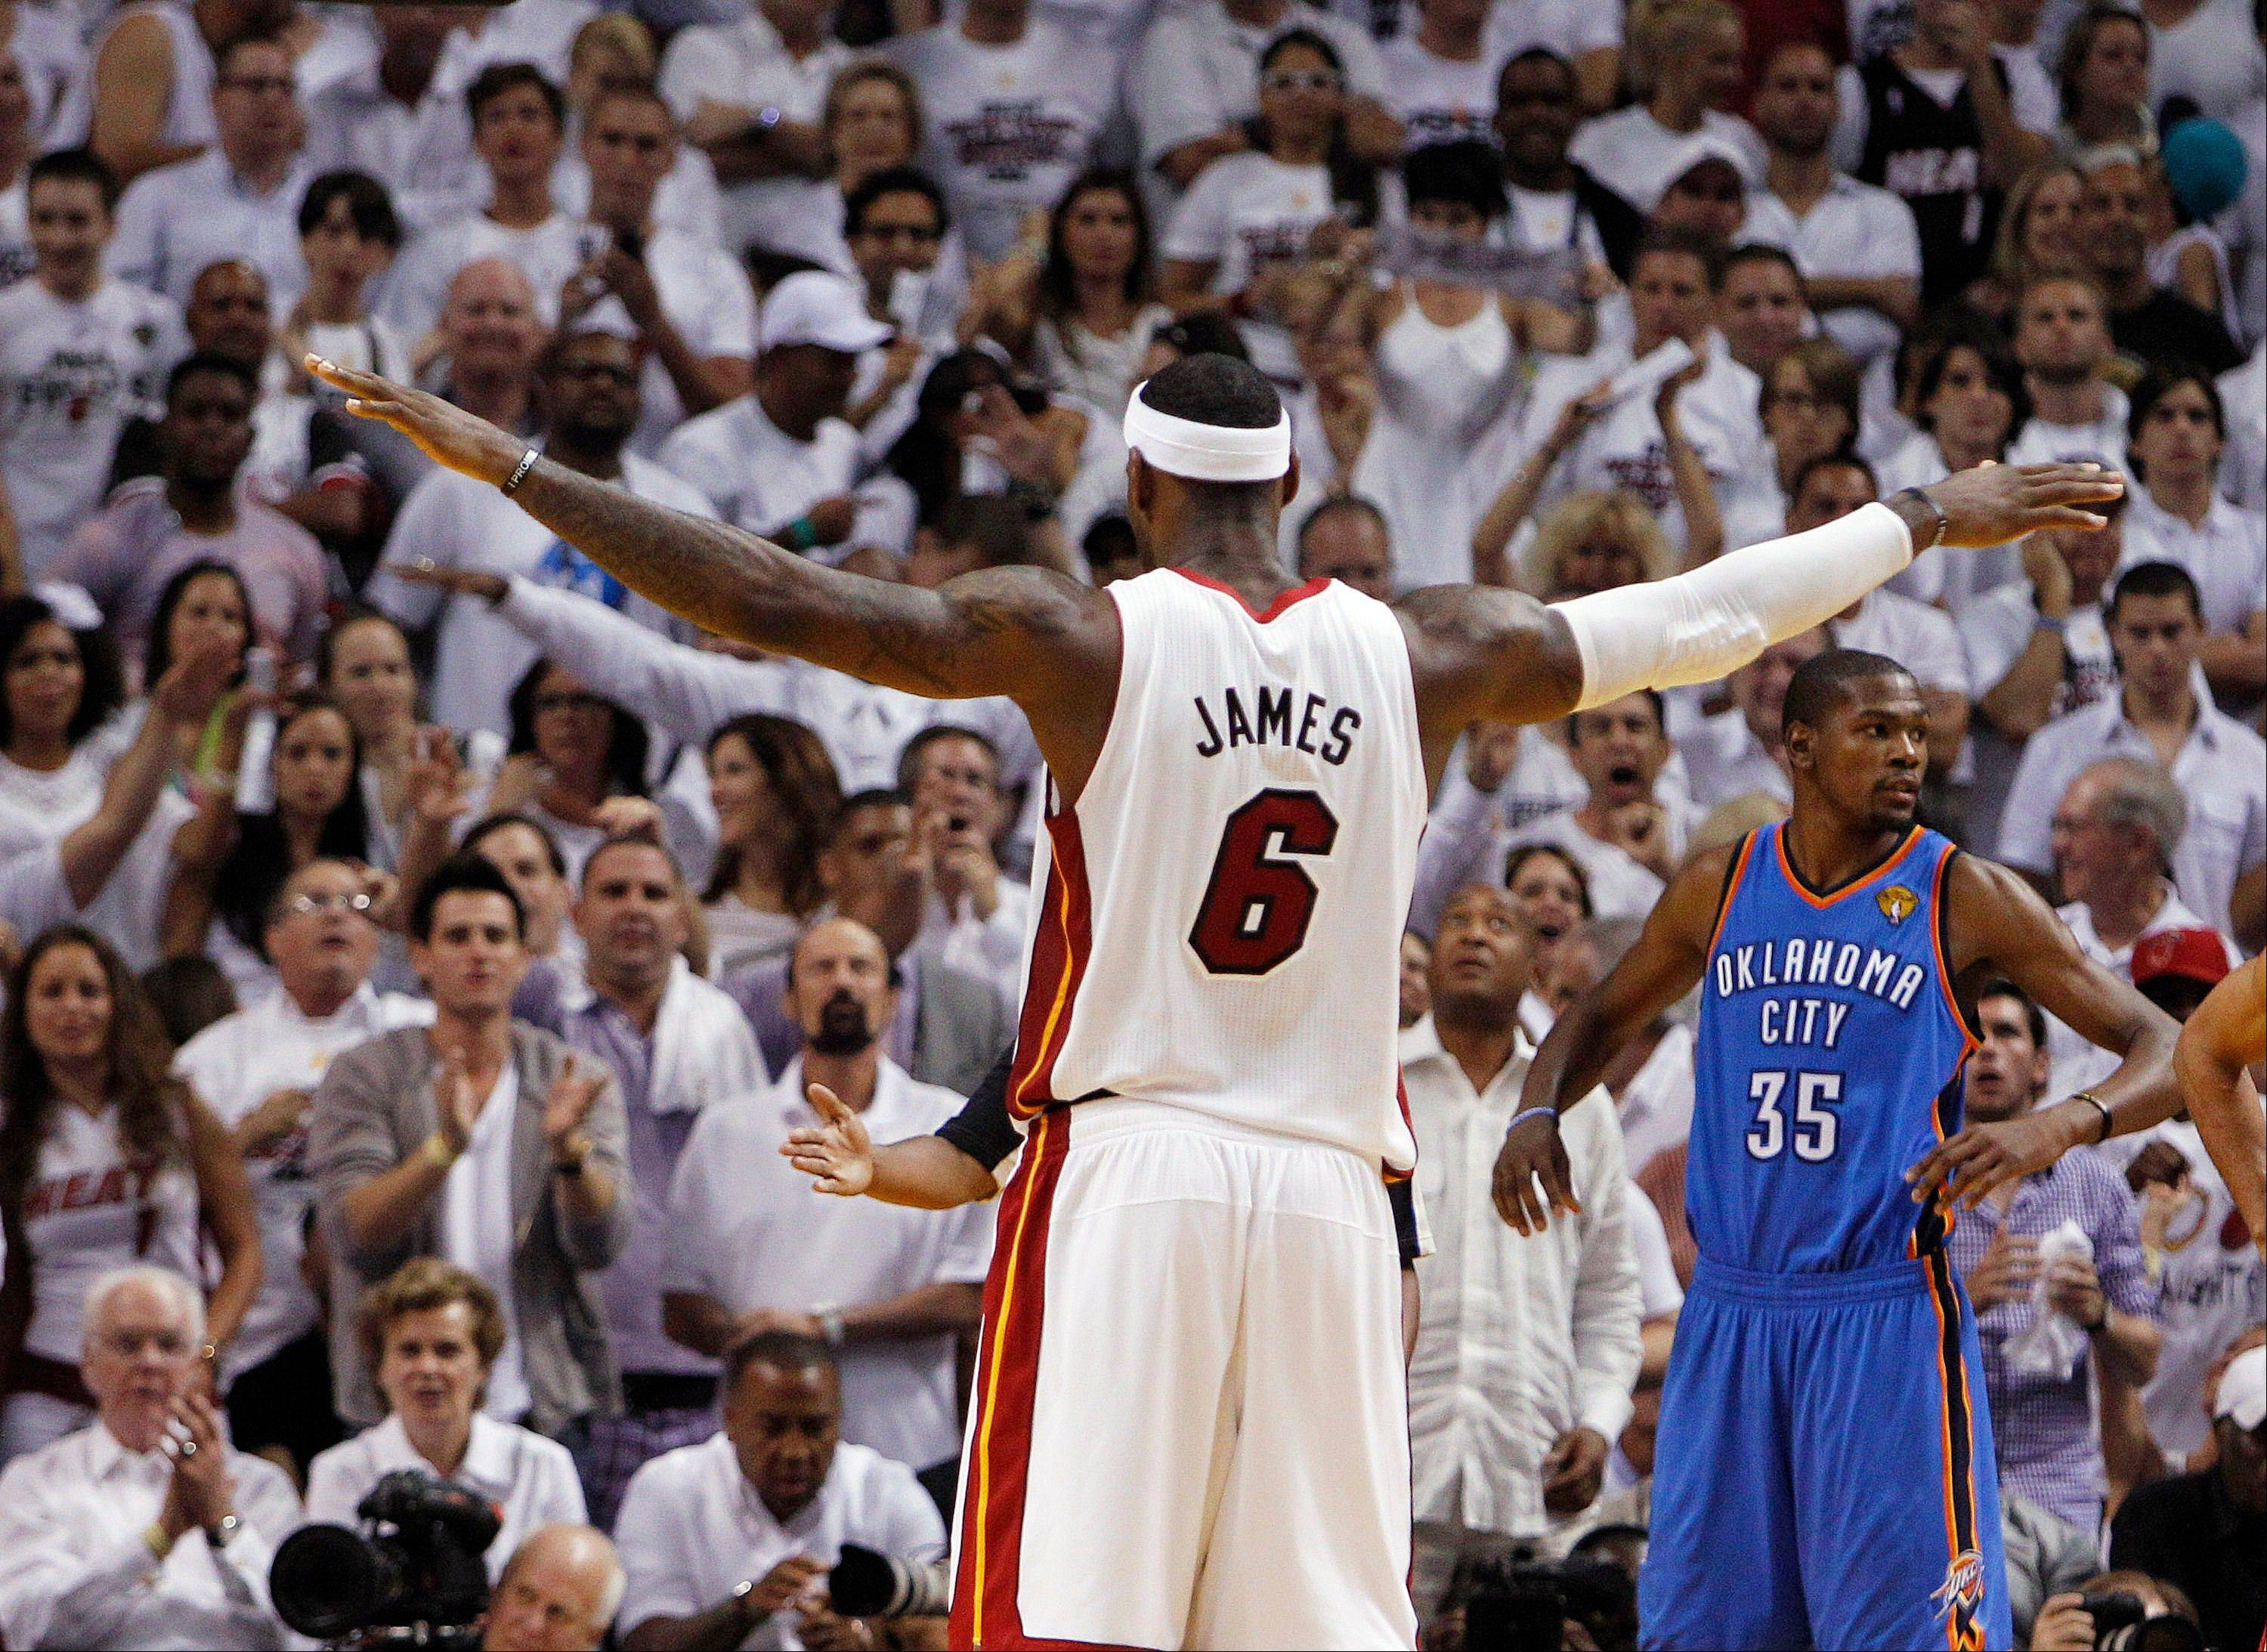 Associated Press LeBron James scored 29 points for the Miami Heat in Sunday night's victory over the Oklahoma City Thunder.